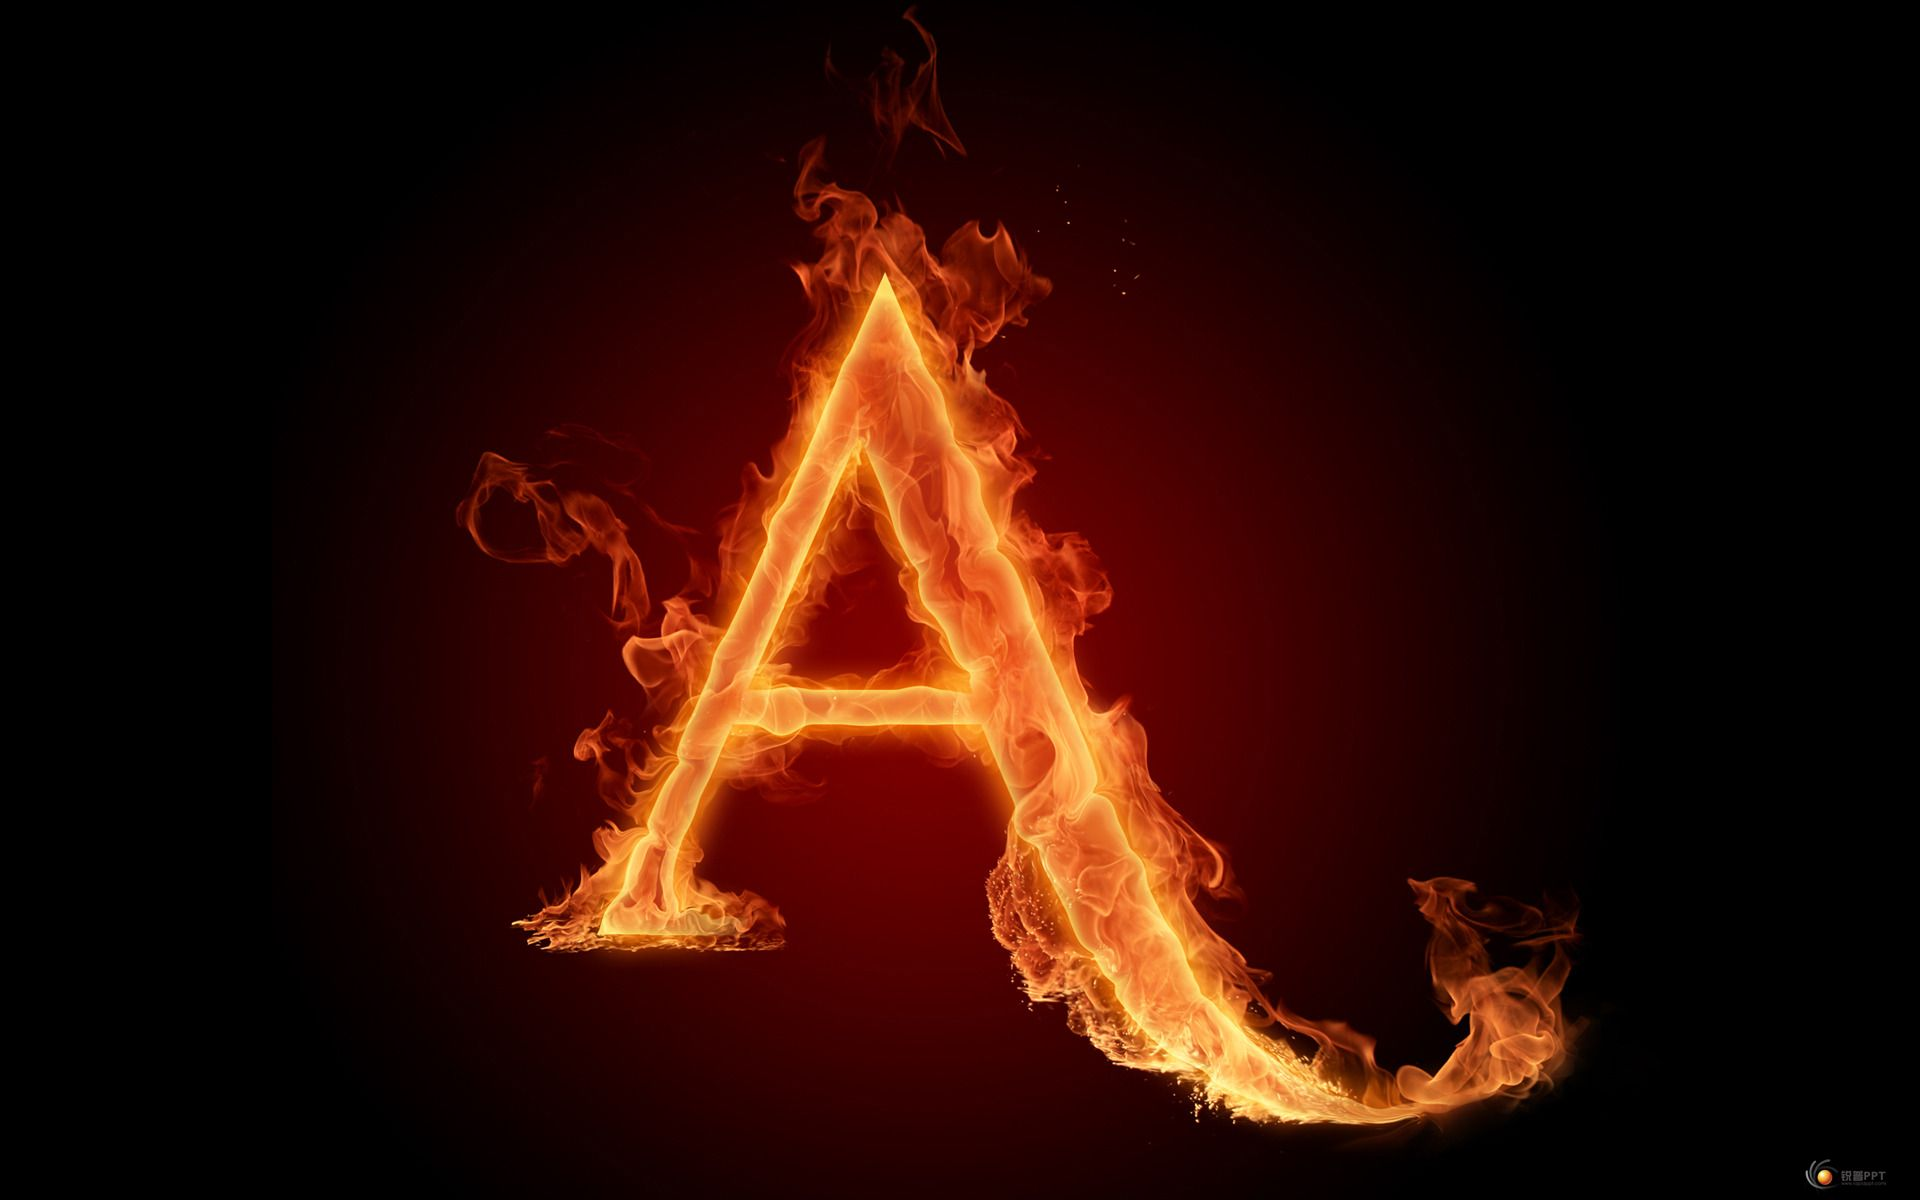 The_fiery_English_alphabet_picture_3538245.jpg